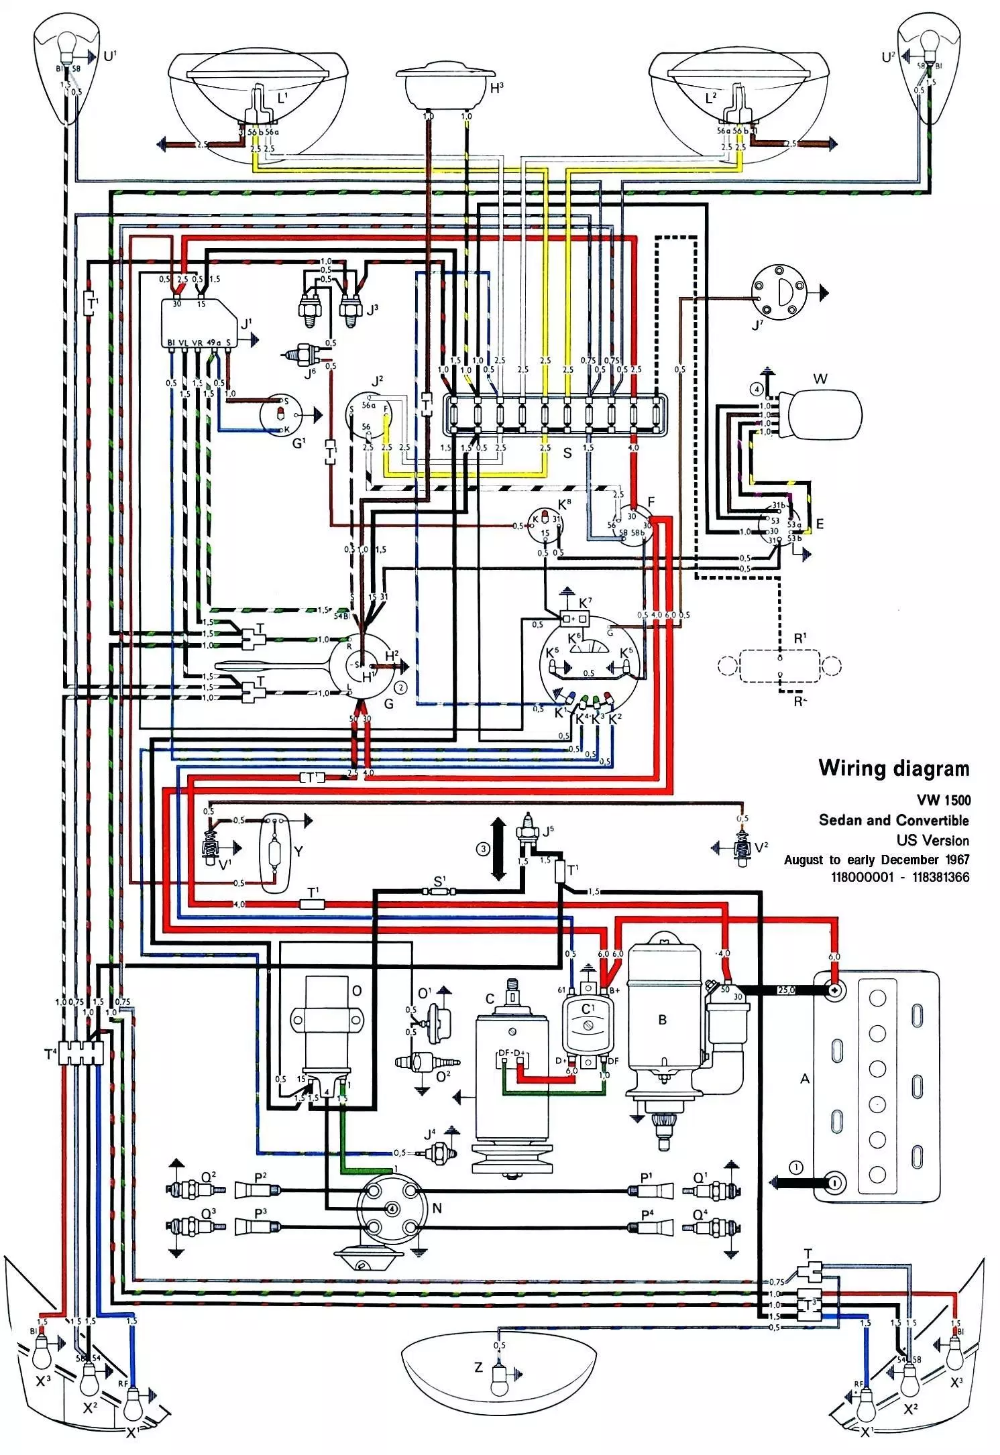 vw ignition switch wiring diagram - google search | electrical ...  pinterest